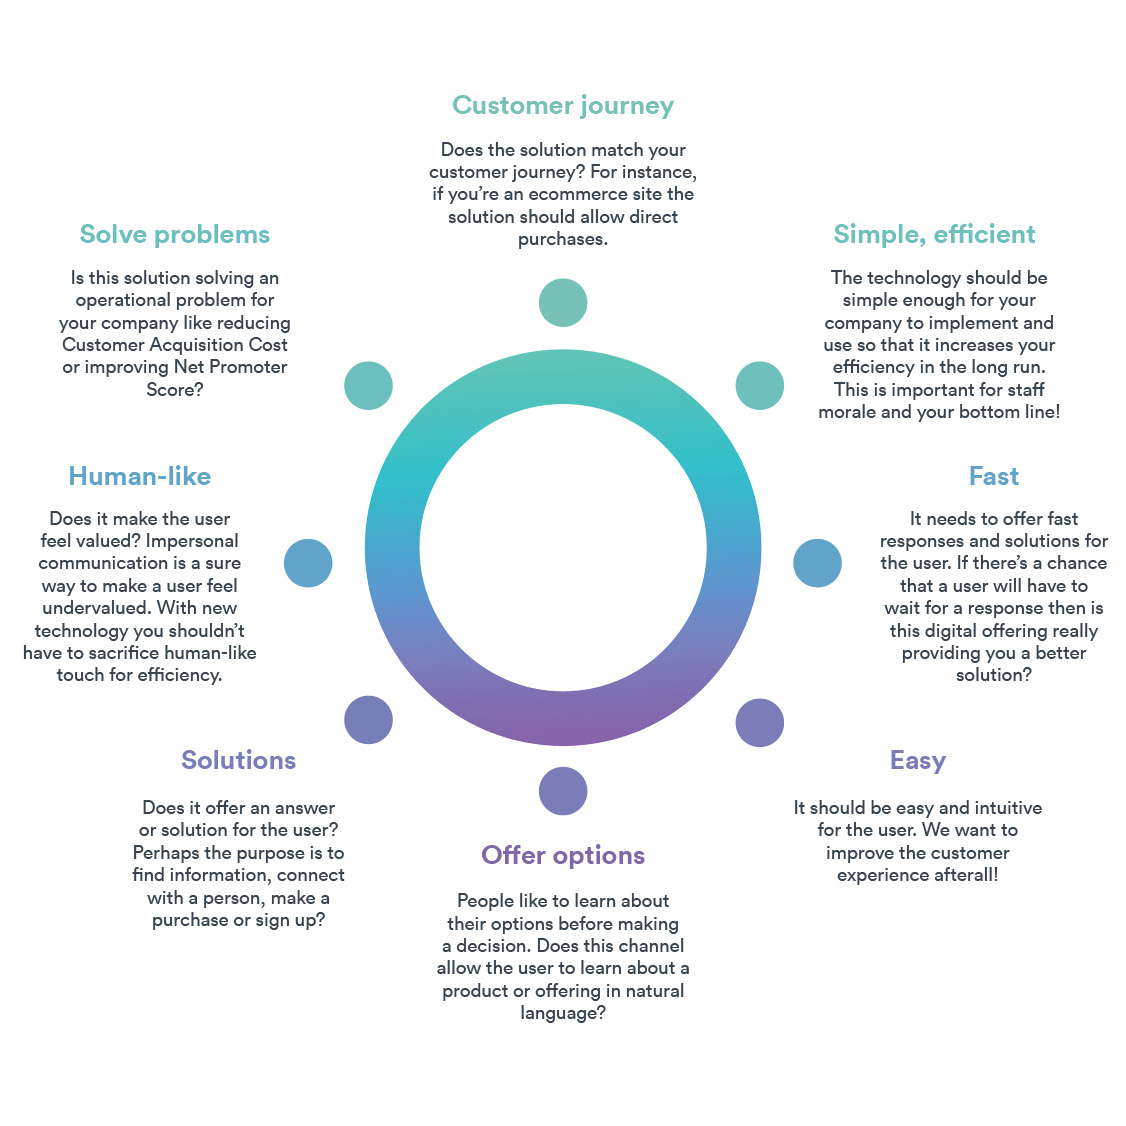 Goals to Consider Before Implementing Digital CX - JRNY